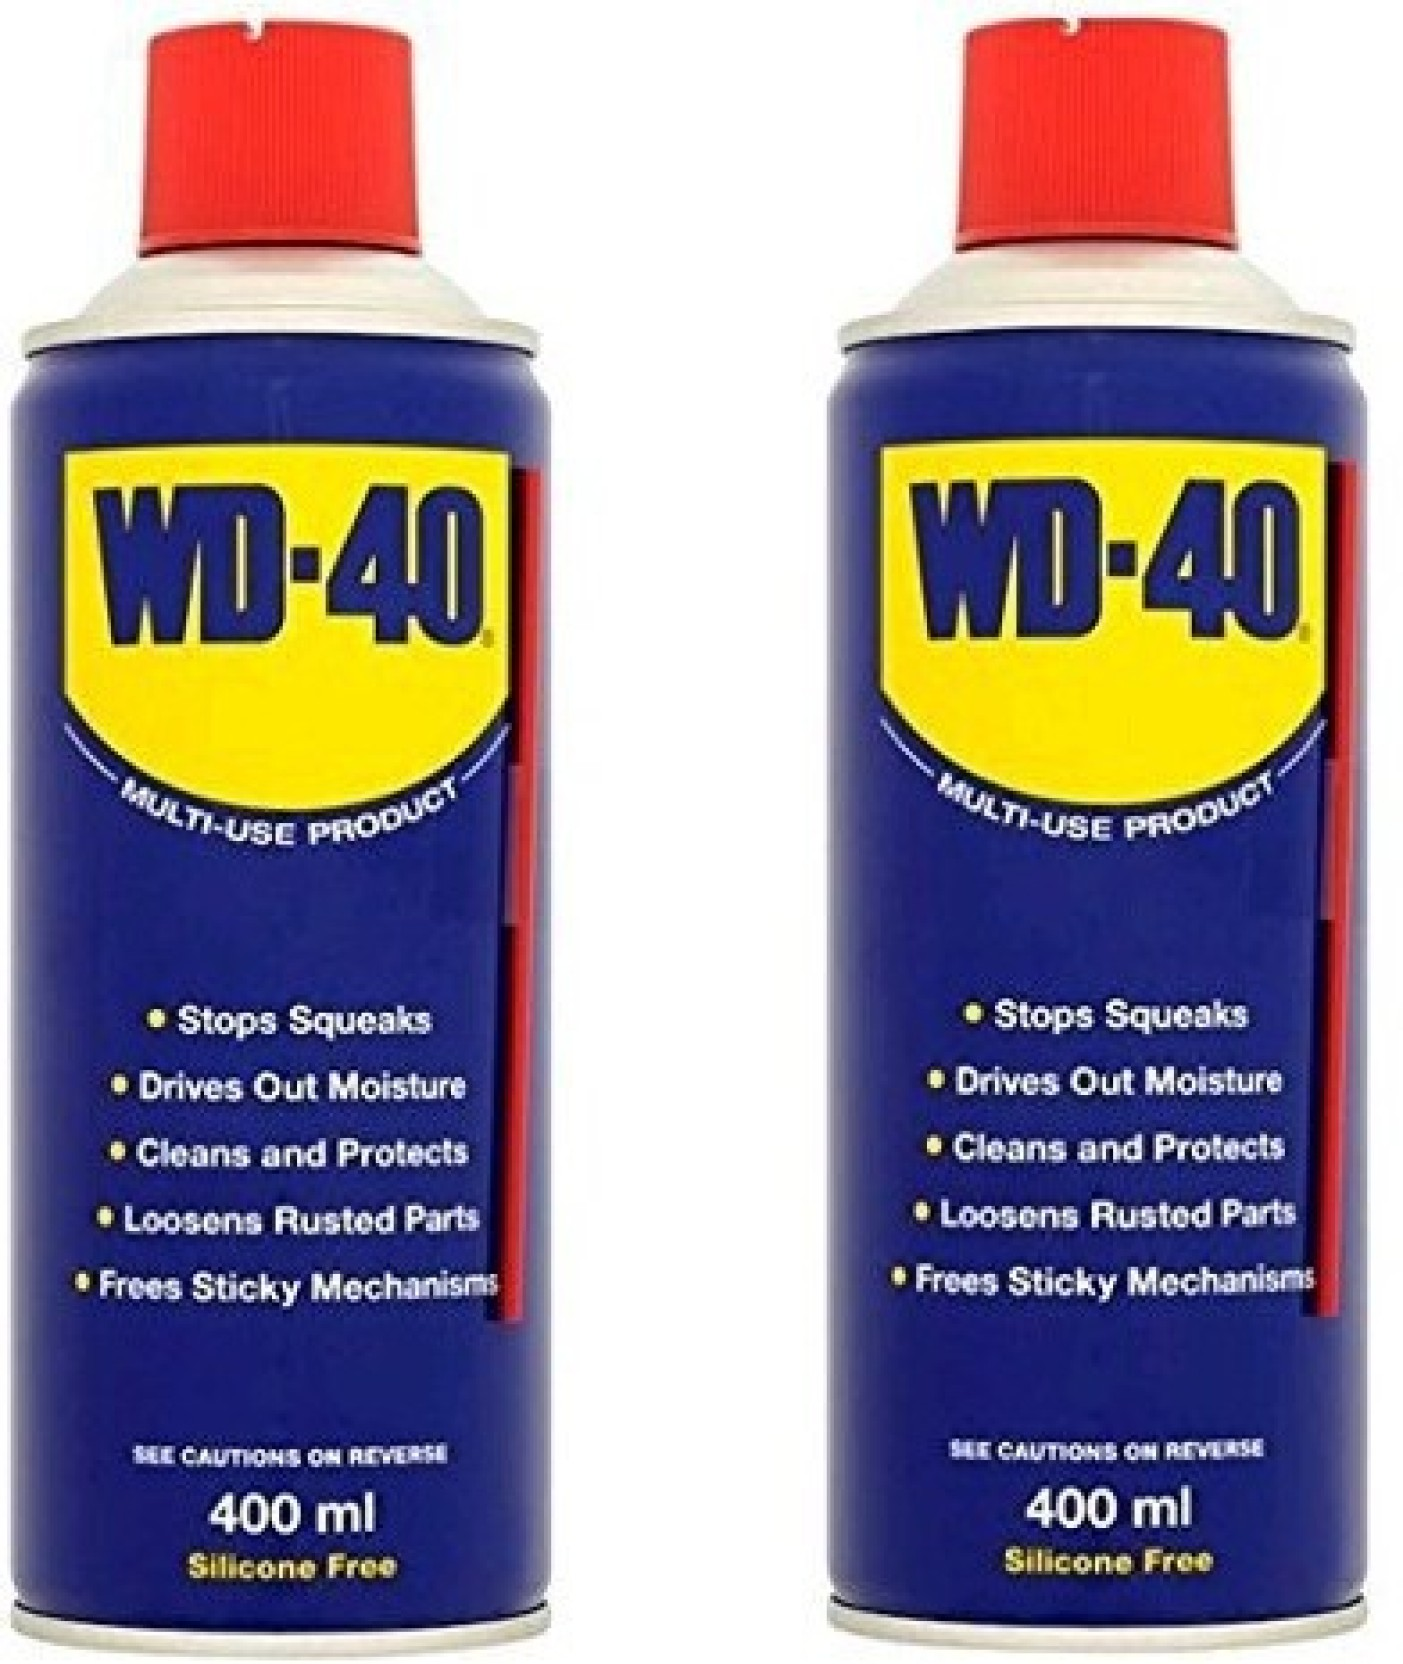 Pidilite Wd40 400ml Degreasing Spray Price In India Buy Belt Dressing Wd 40 Specialist Add To Cart